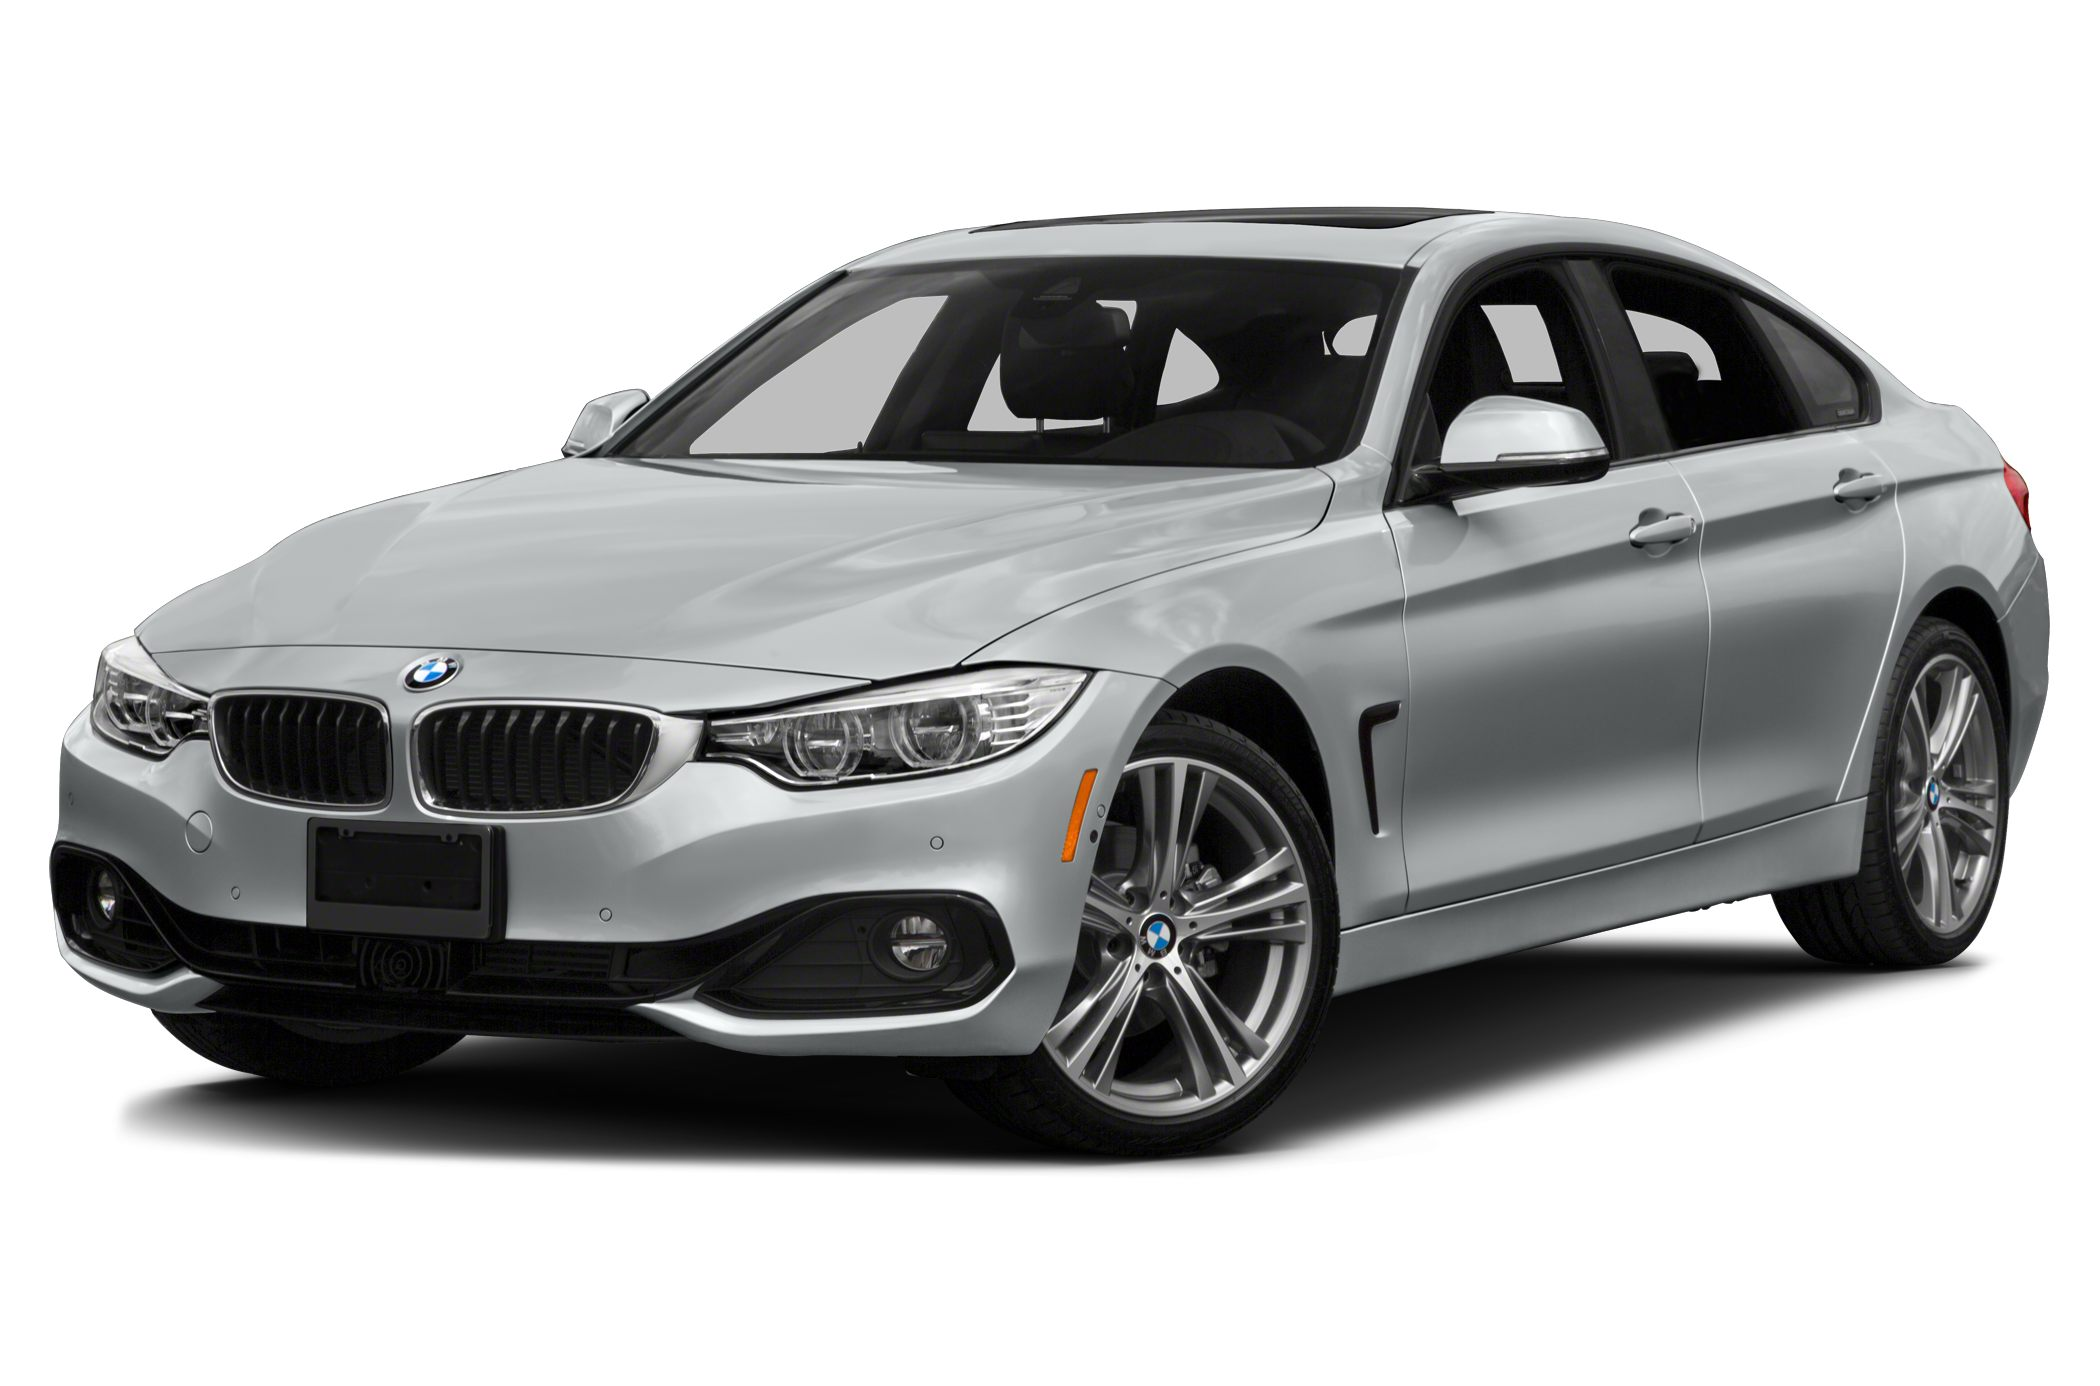 2015 BMW 428 Gran Coupe I XDrive Hatchback for sale in Bloomfield for $51,250 with 11 miles